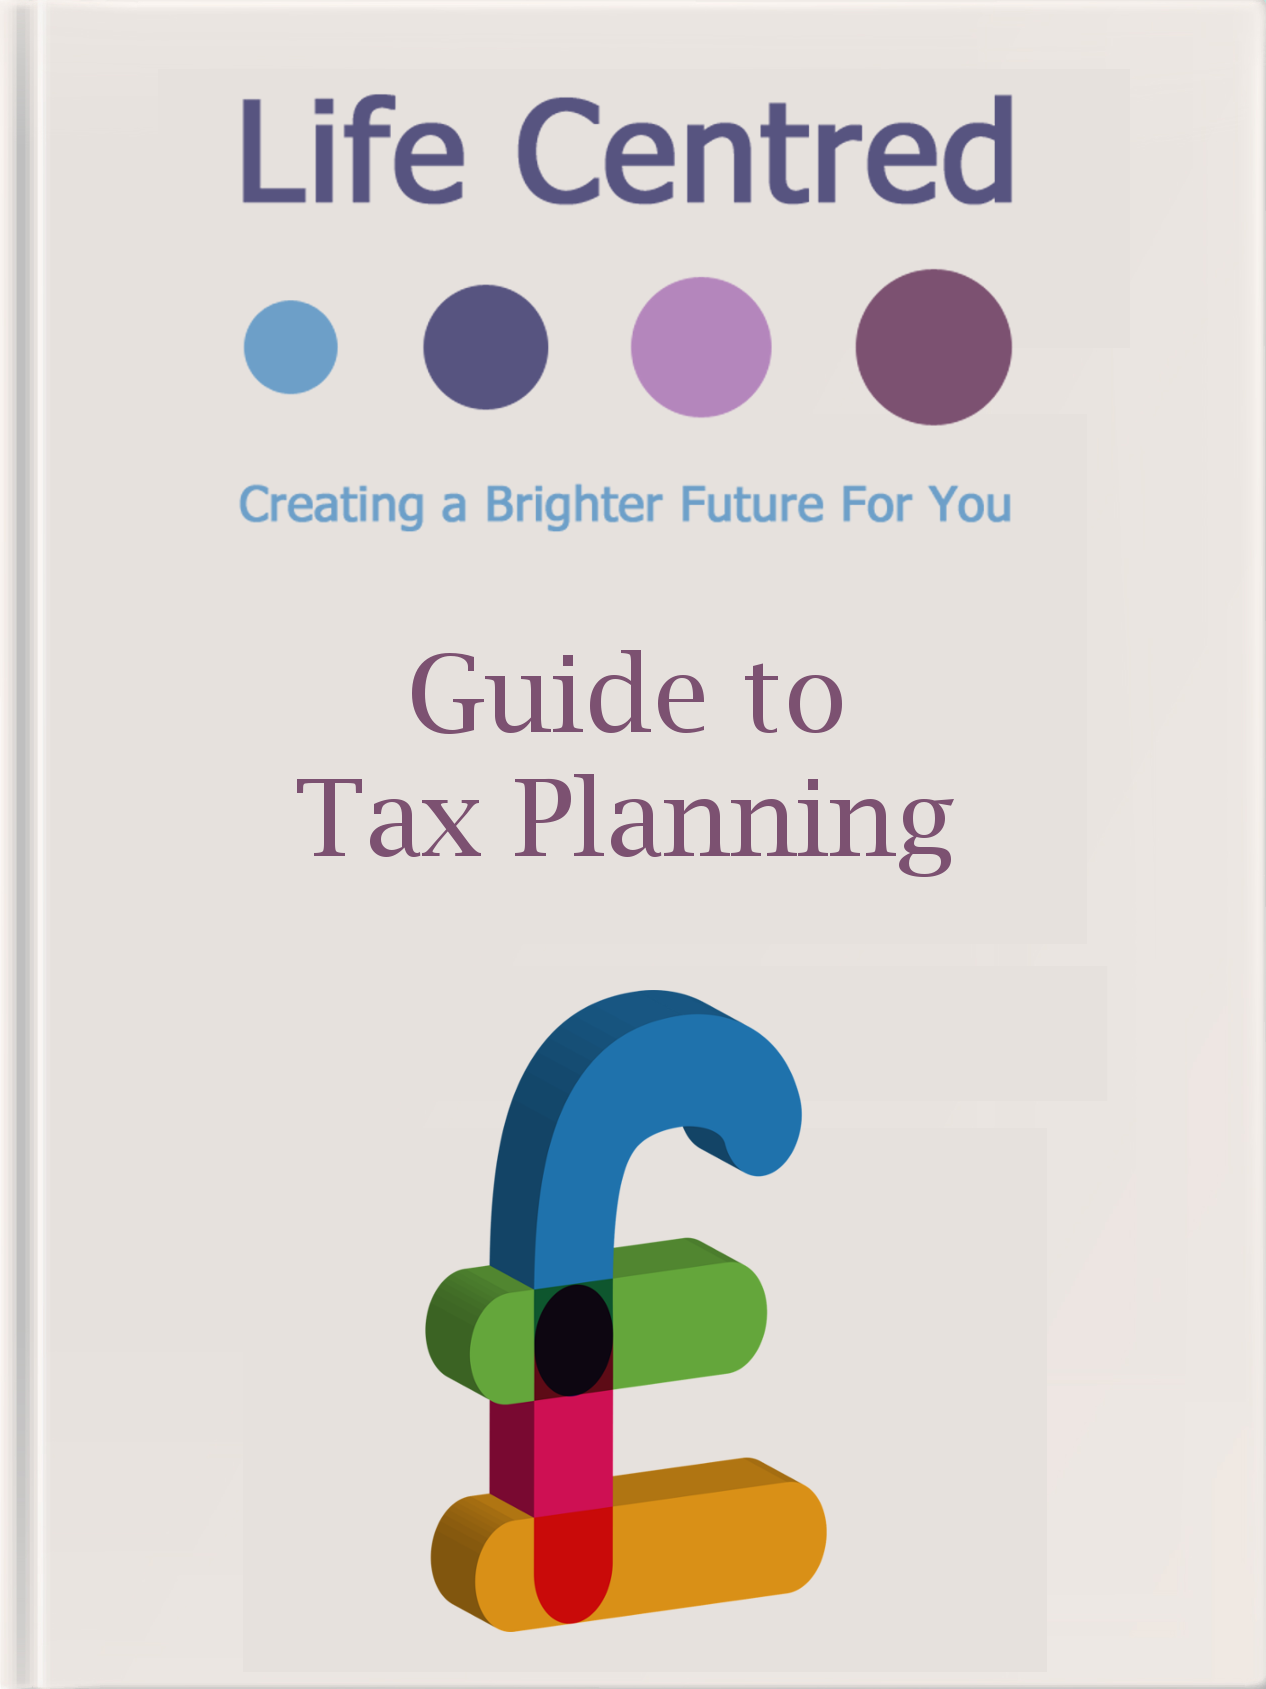 Download our Tax Planning Guide